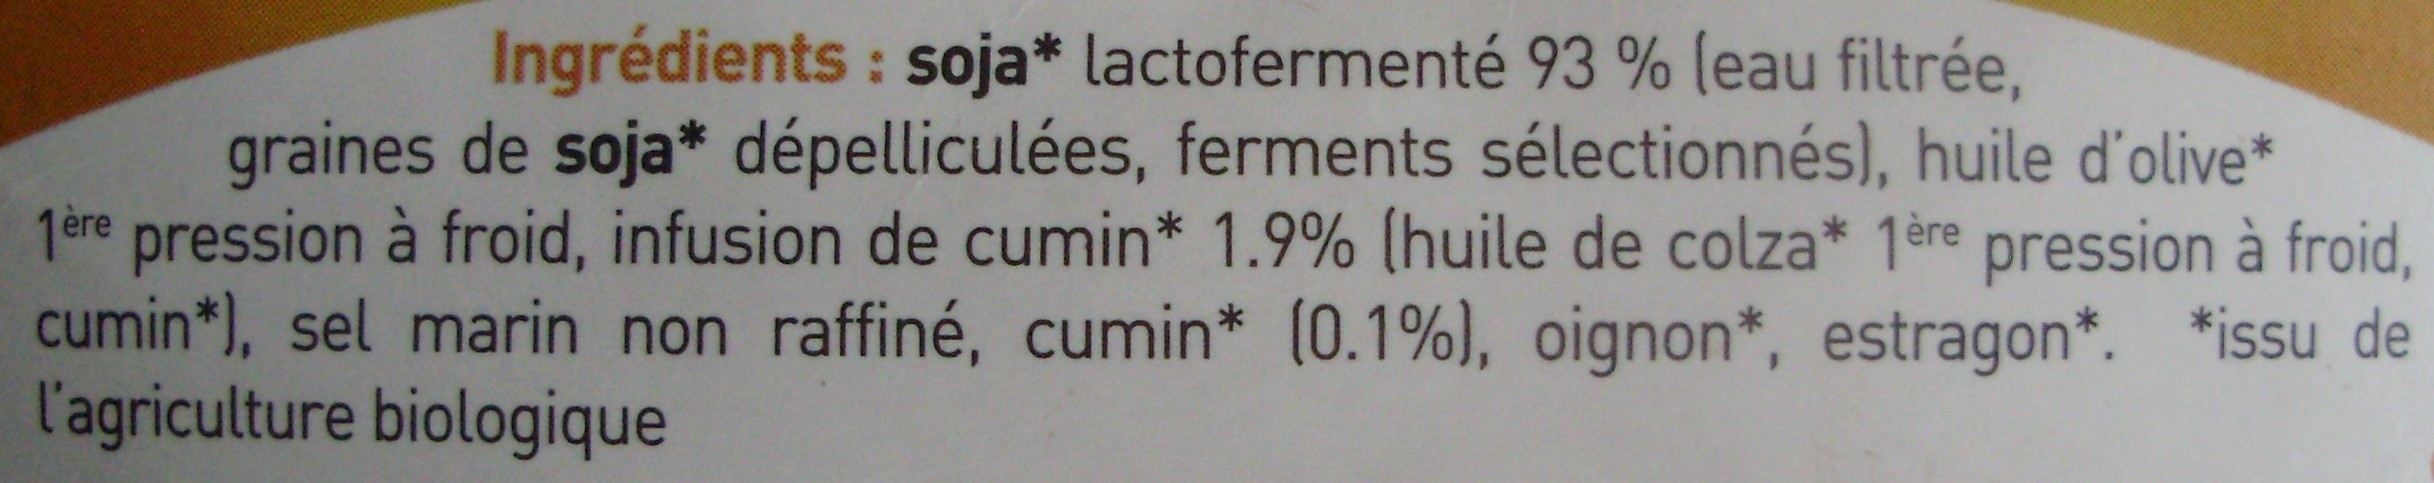 Tartine & moi comme un fromage Cumin Bio (12,9 % MG) - Ingrédients